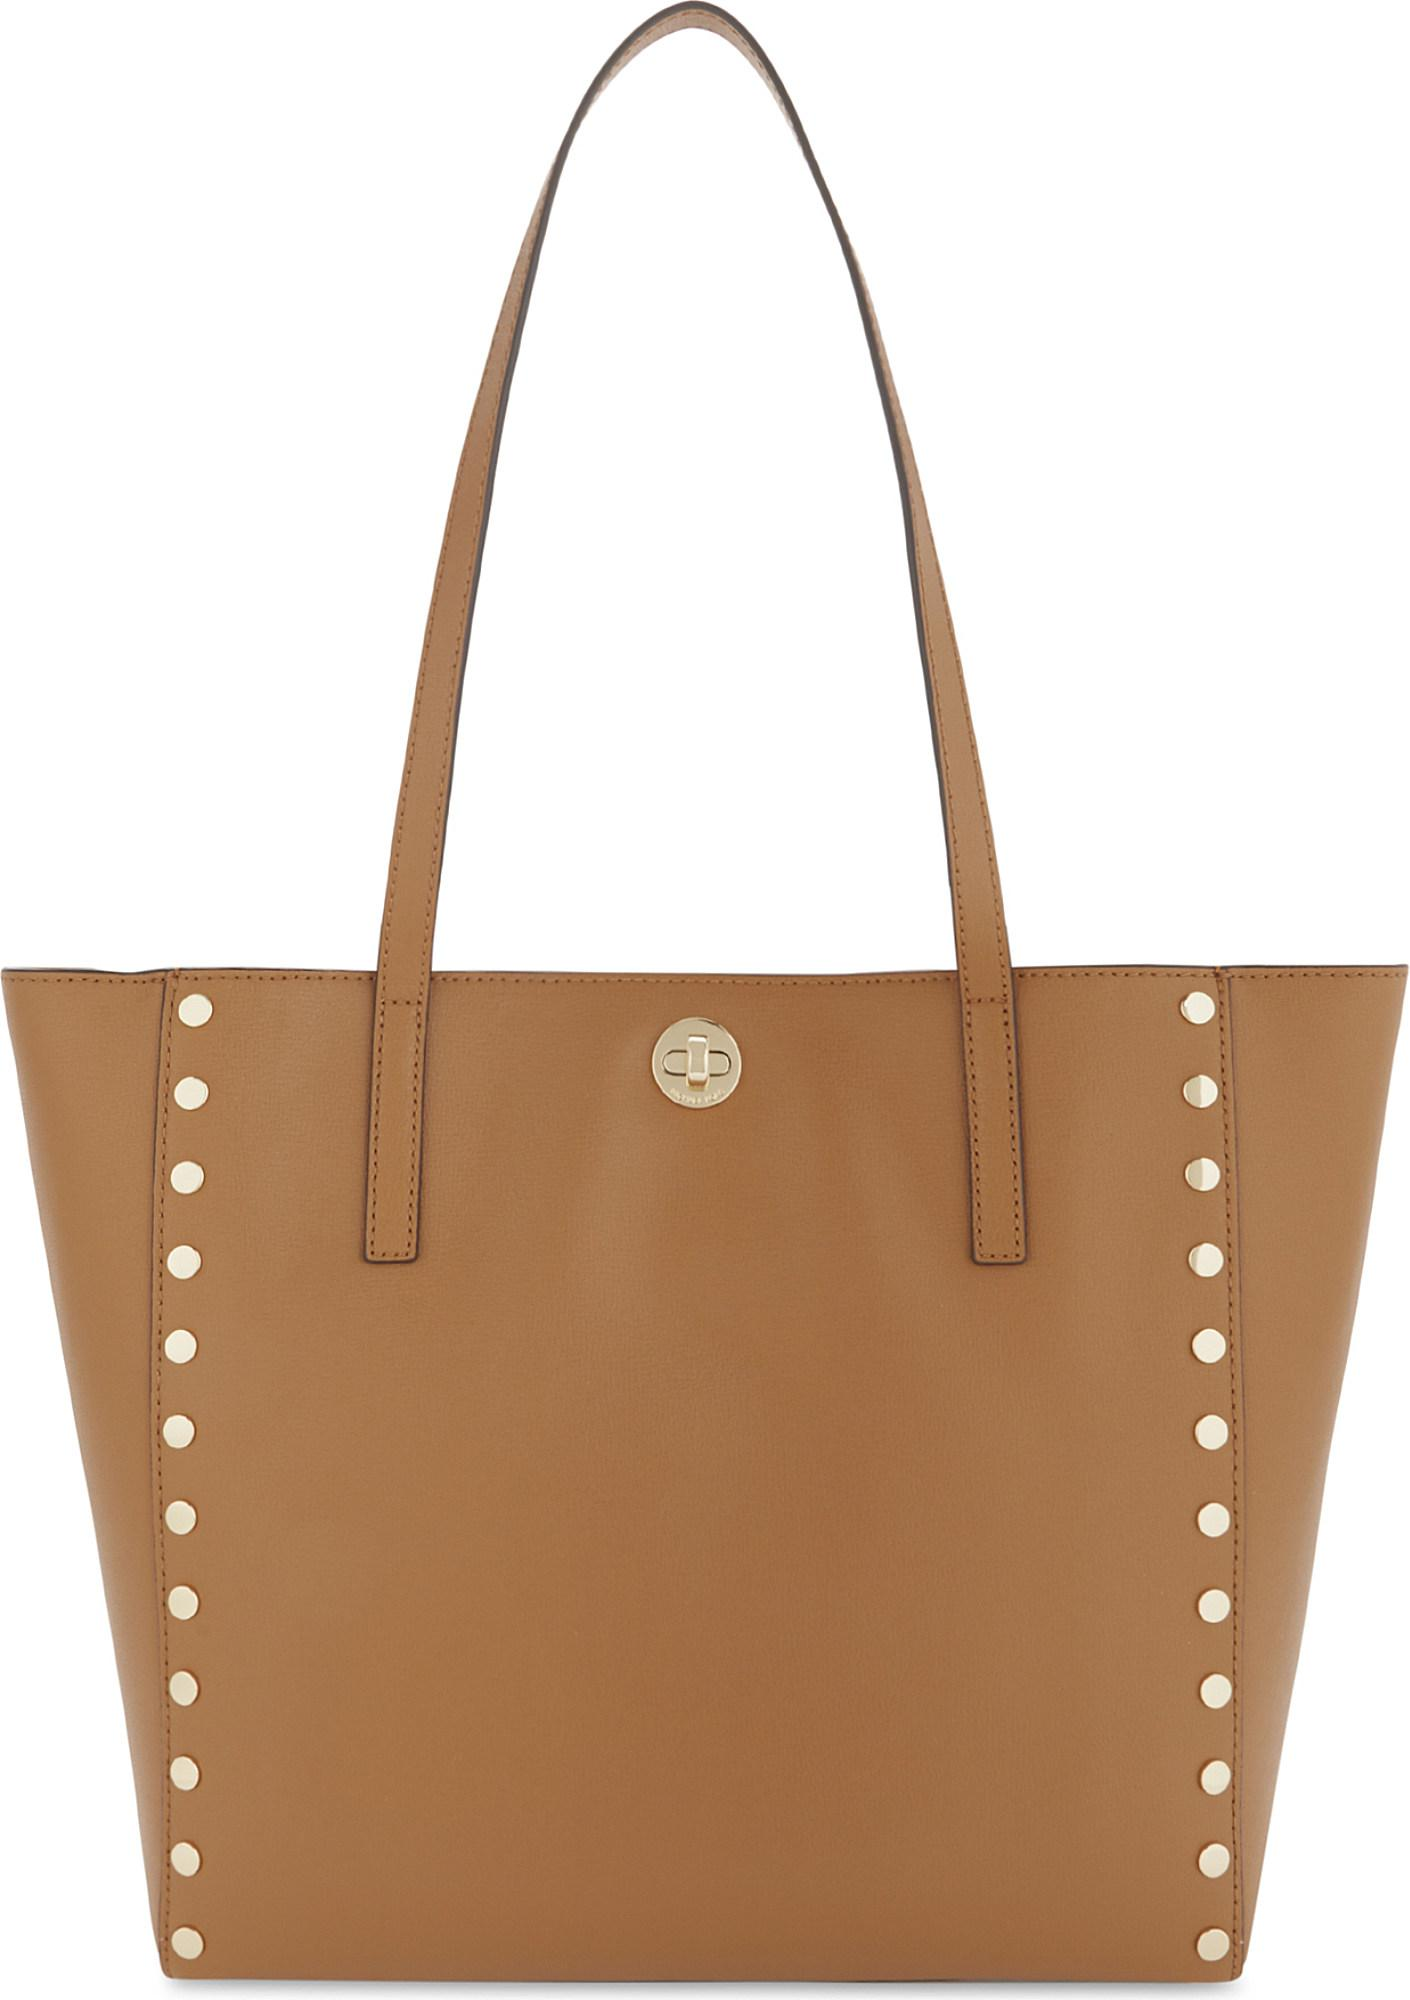 b15c53879cb6 Lyst - MICHAEL Michael Kors Rivington Studded Large Leather Tote in ...